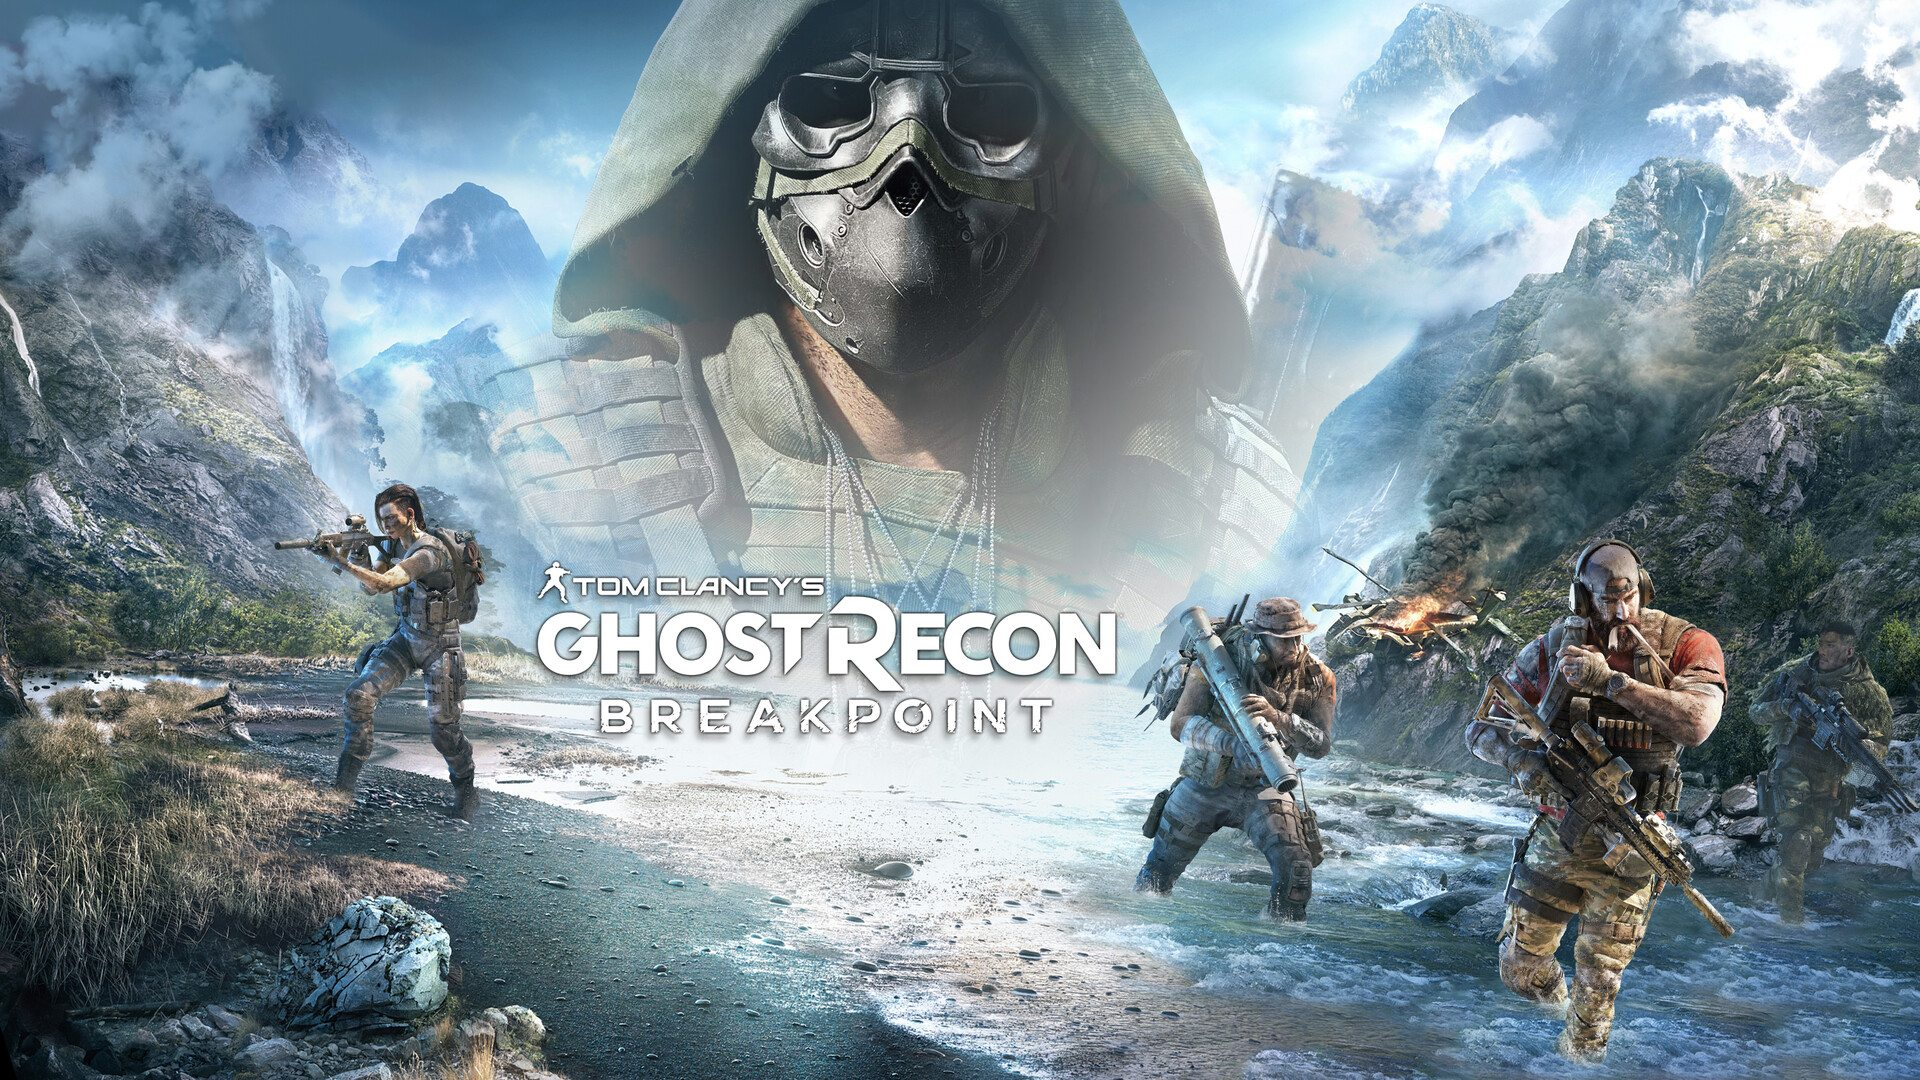 เกม Ghost Recon: Breakpoint